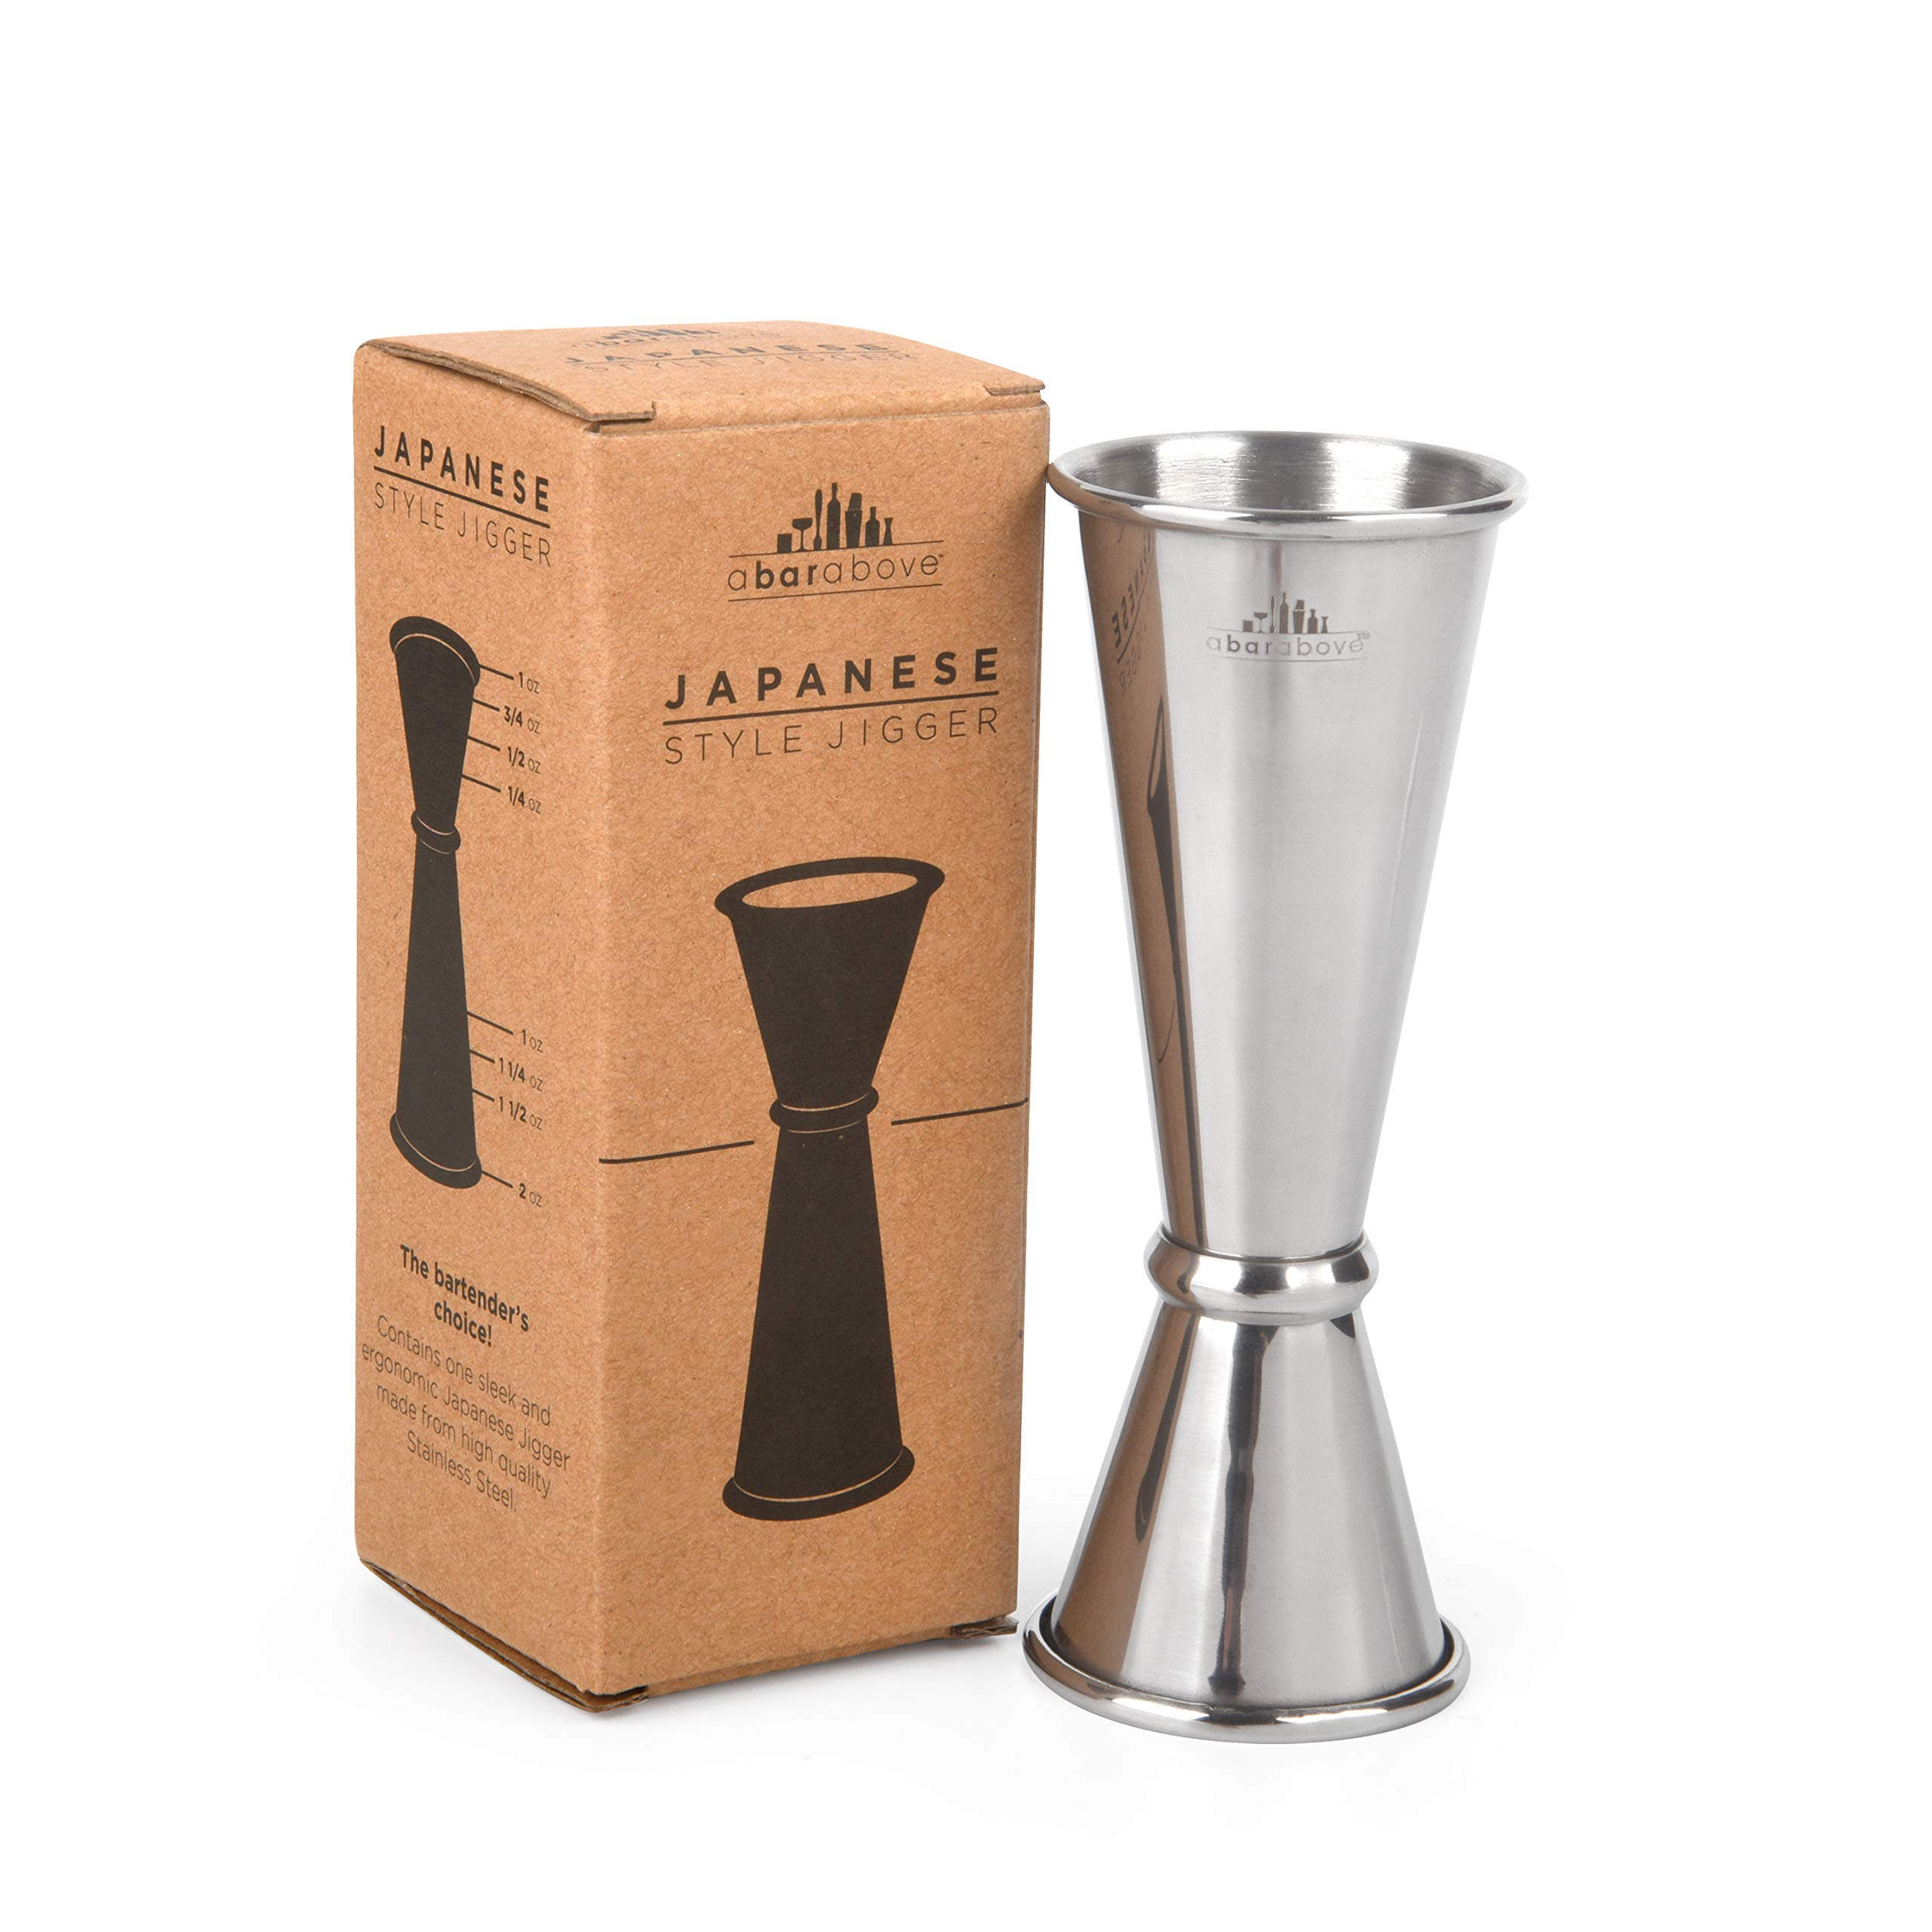 Japanese Jigger - Premium Double Cocktail Jigger, 1oz/2oz made from Stainless Steel 304 by Top Shelf Bar Supply